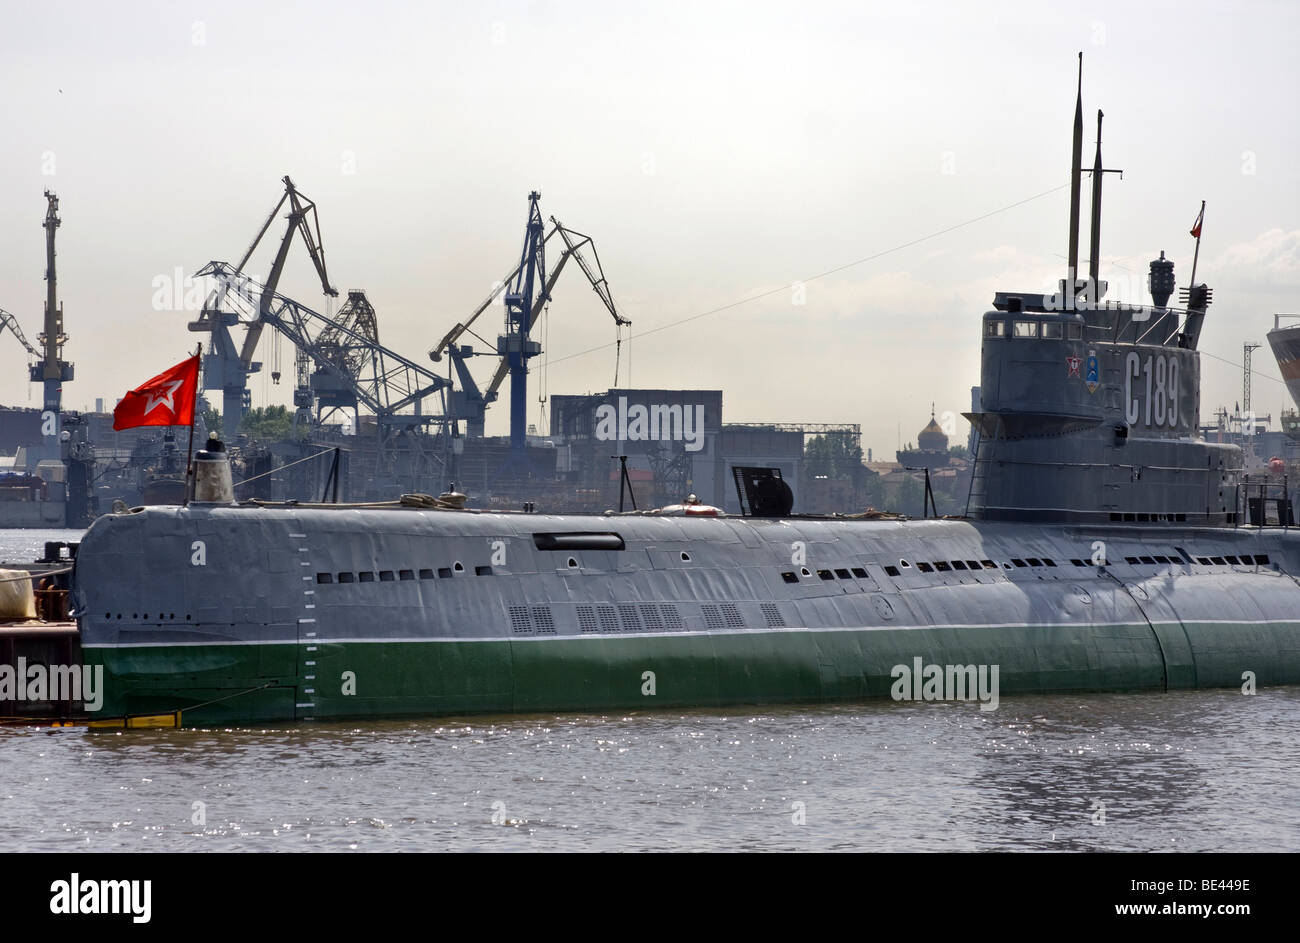 Old diesel submarine of the Soviet navy, built in 1954, now a museum, St. Petersburg, Russia - Stock Image